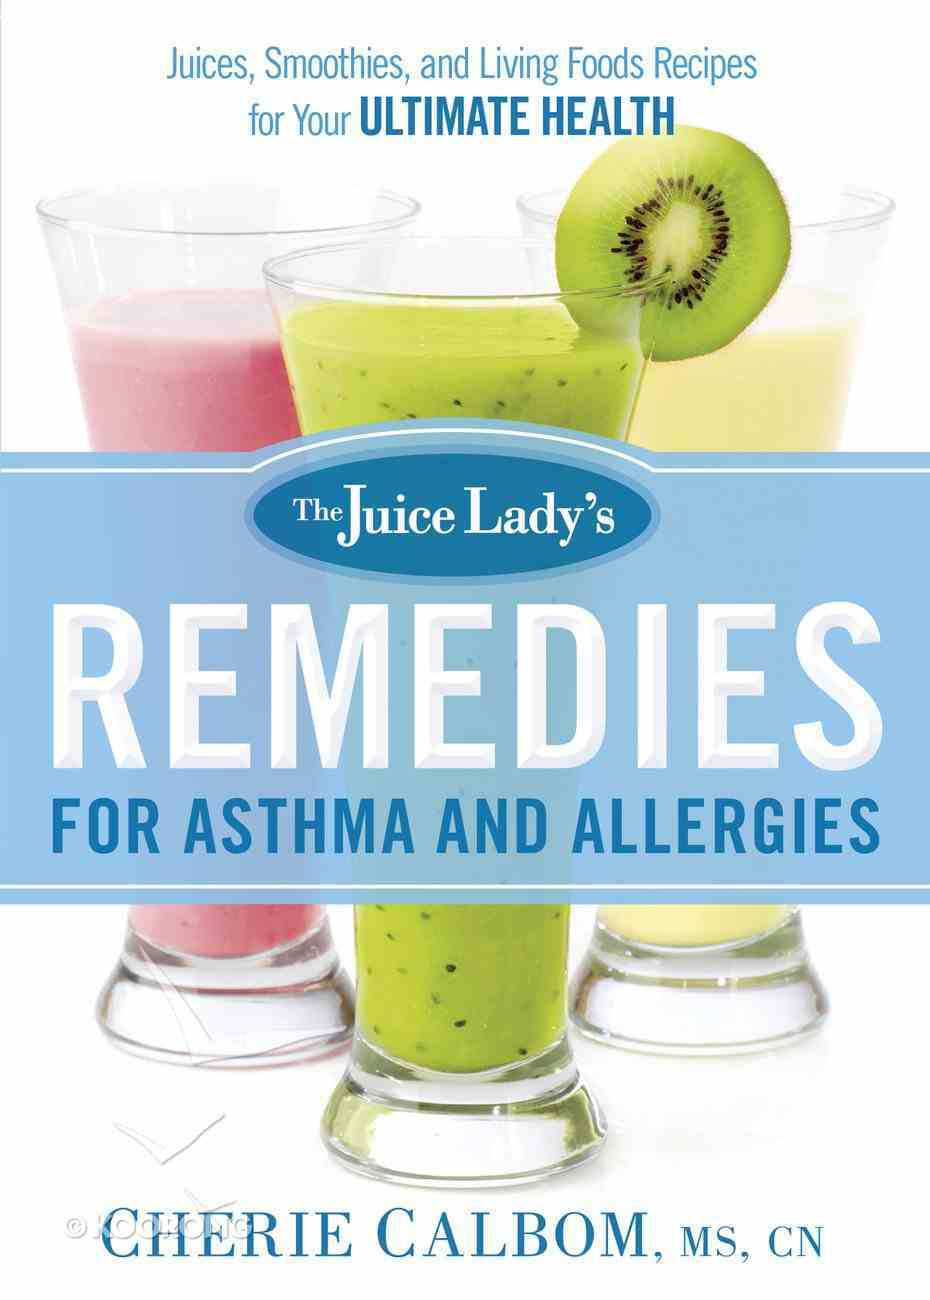 The Juice Lady's Remedies For Asthma and Allergies eBook